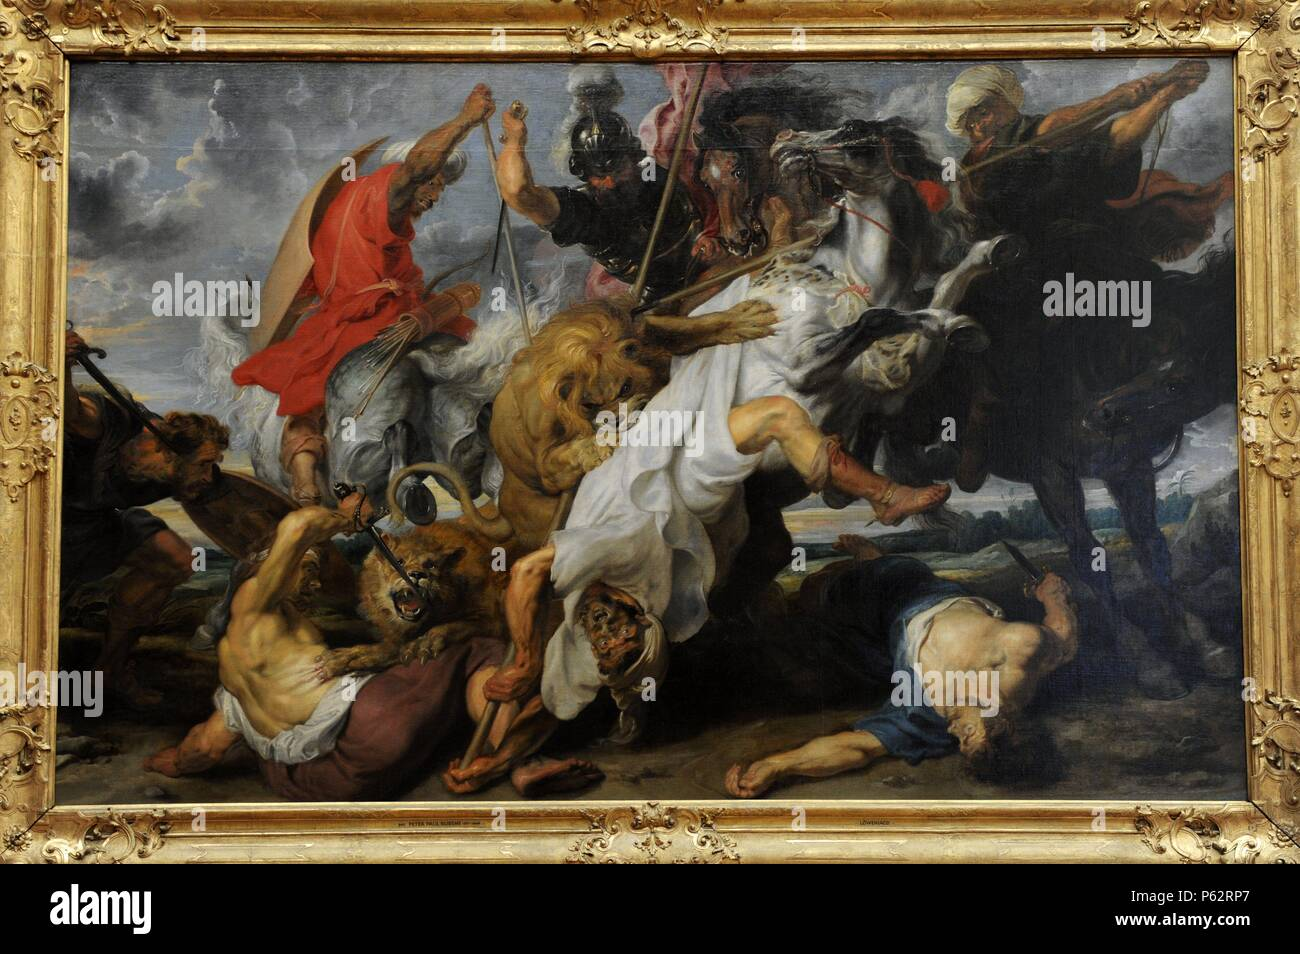 Peter Paul Rubens (1577-1640). Was a German-born Flemish Baroque painter.  Lion Hunt, 1621. Baroque style. Alte Pinakothek. Munich. Germany.